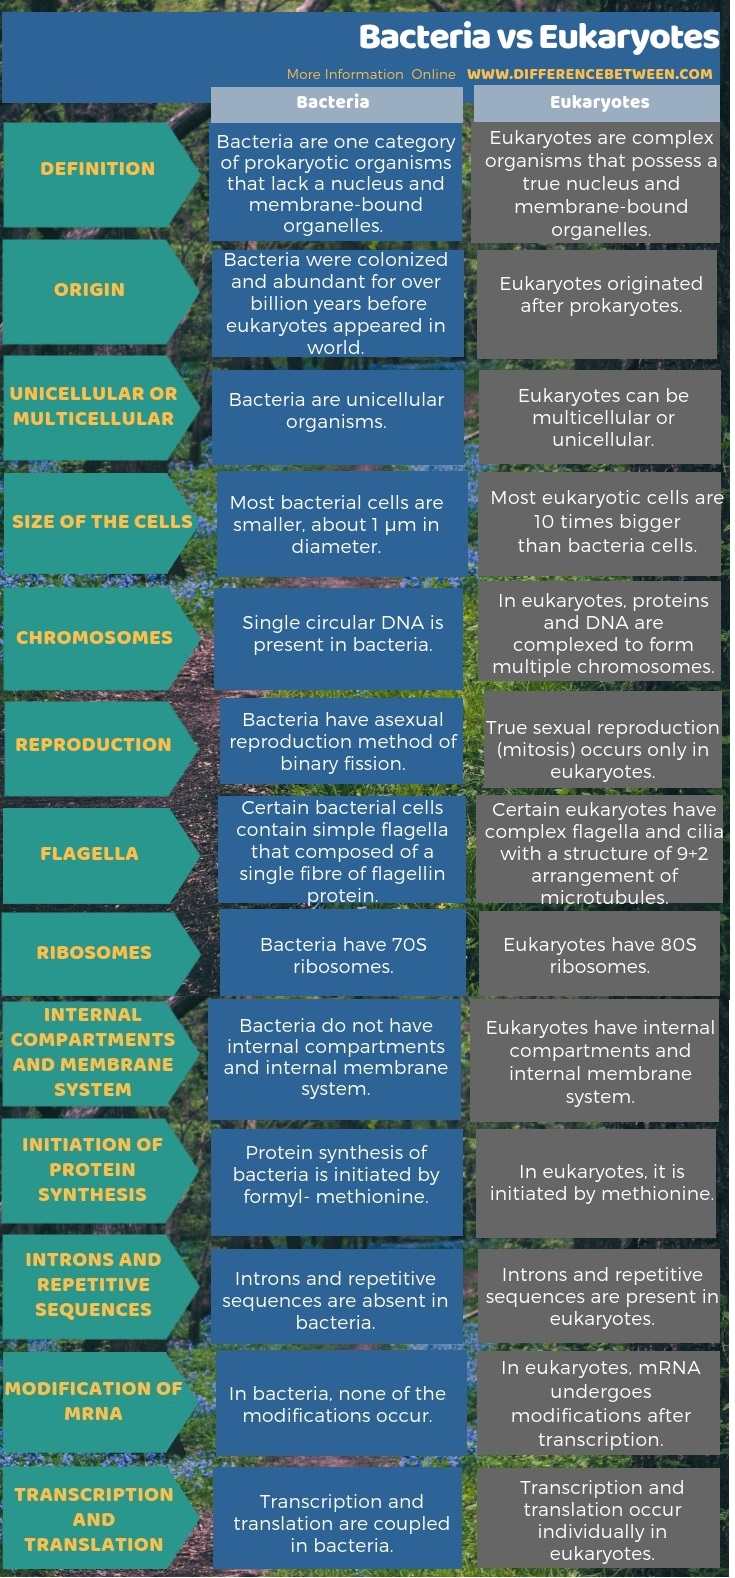 Difference Between Bacteria and Eukaryotes in Tabular Form